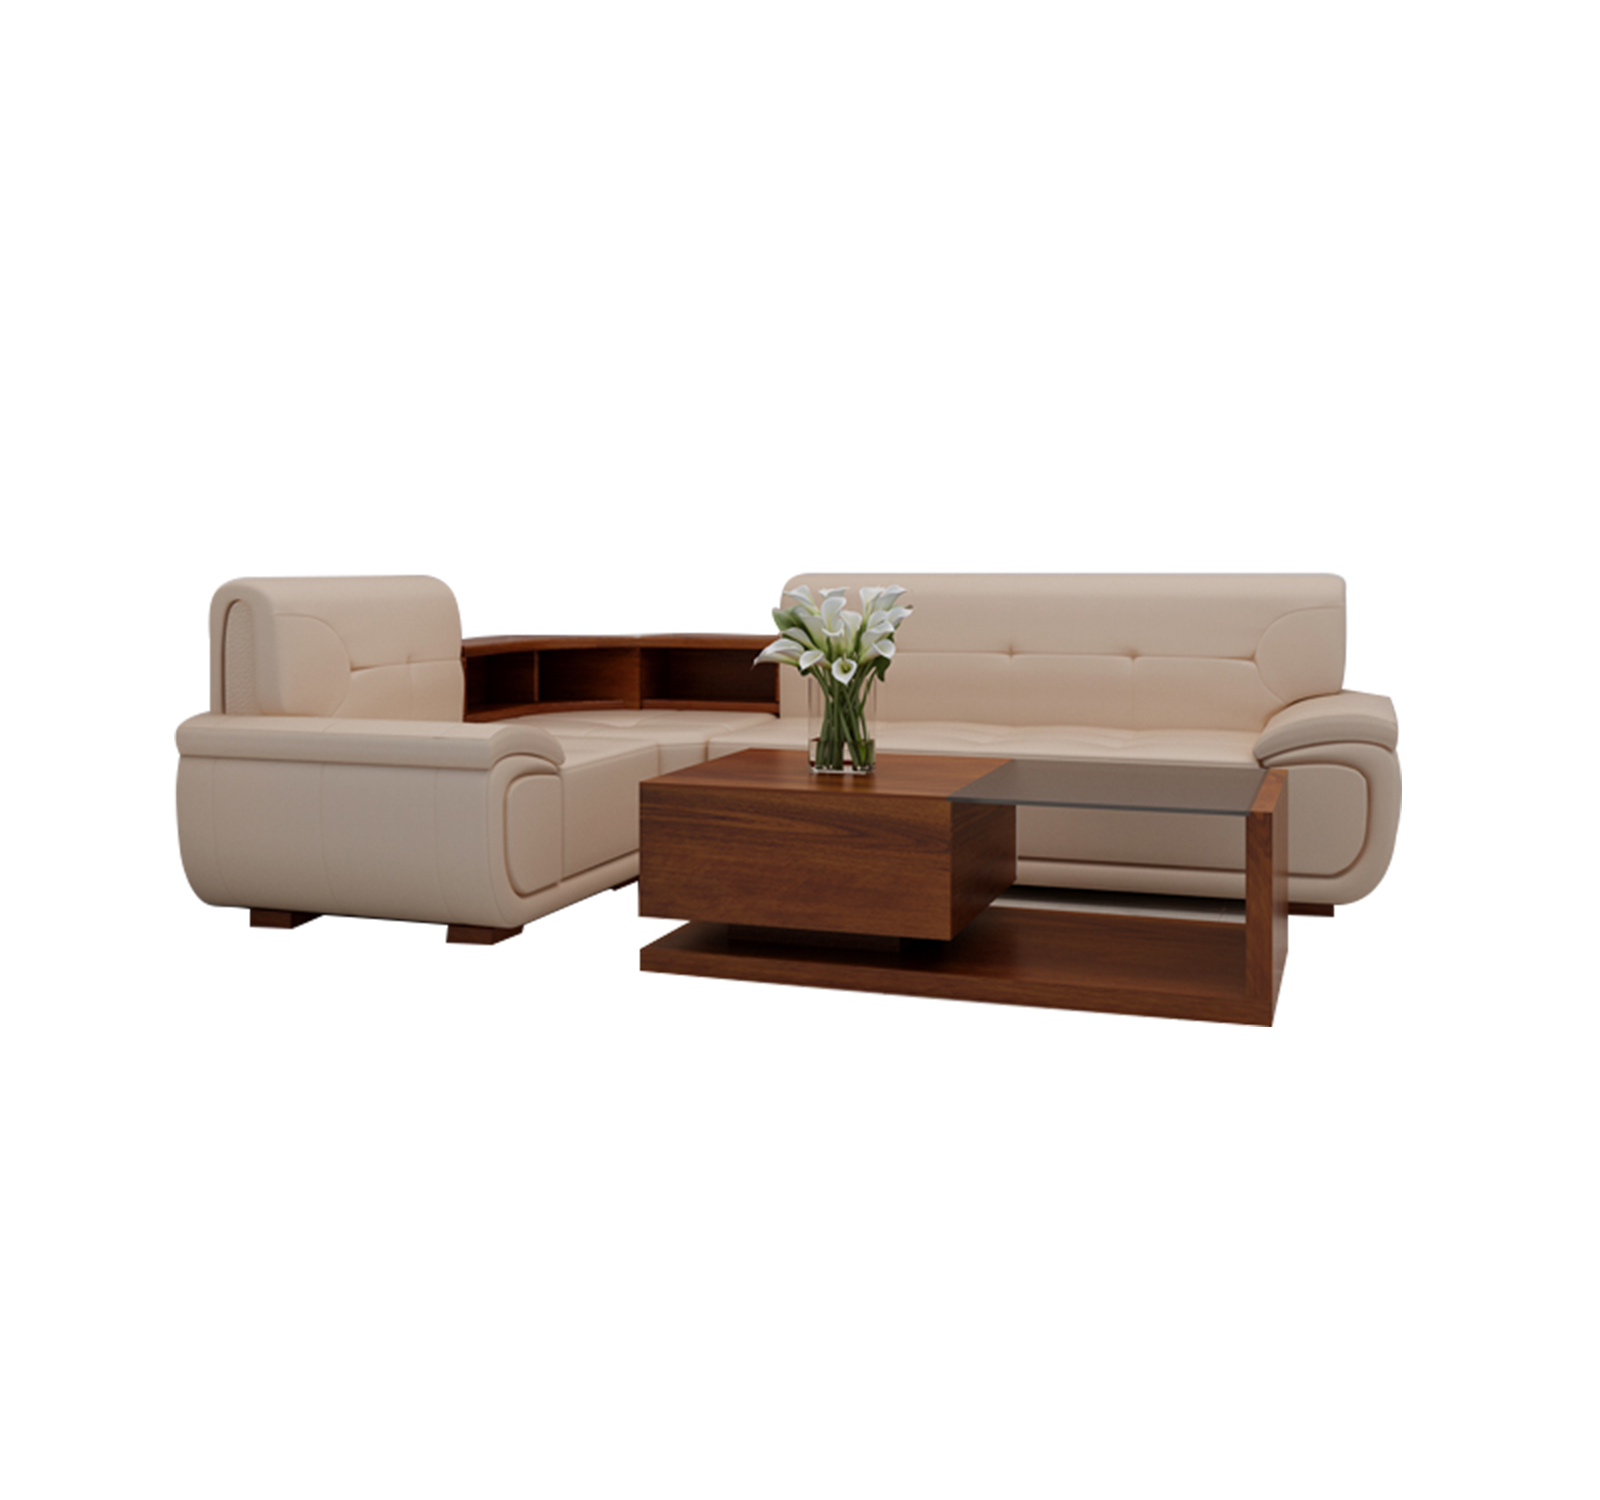 sofa hannover g c n i th t ph ng kh ch n i th t bmd. Black Bedroom Furniture Sets. Home Design Ideas